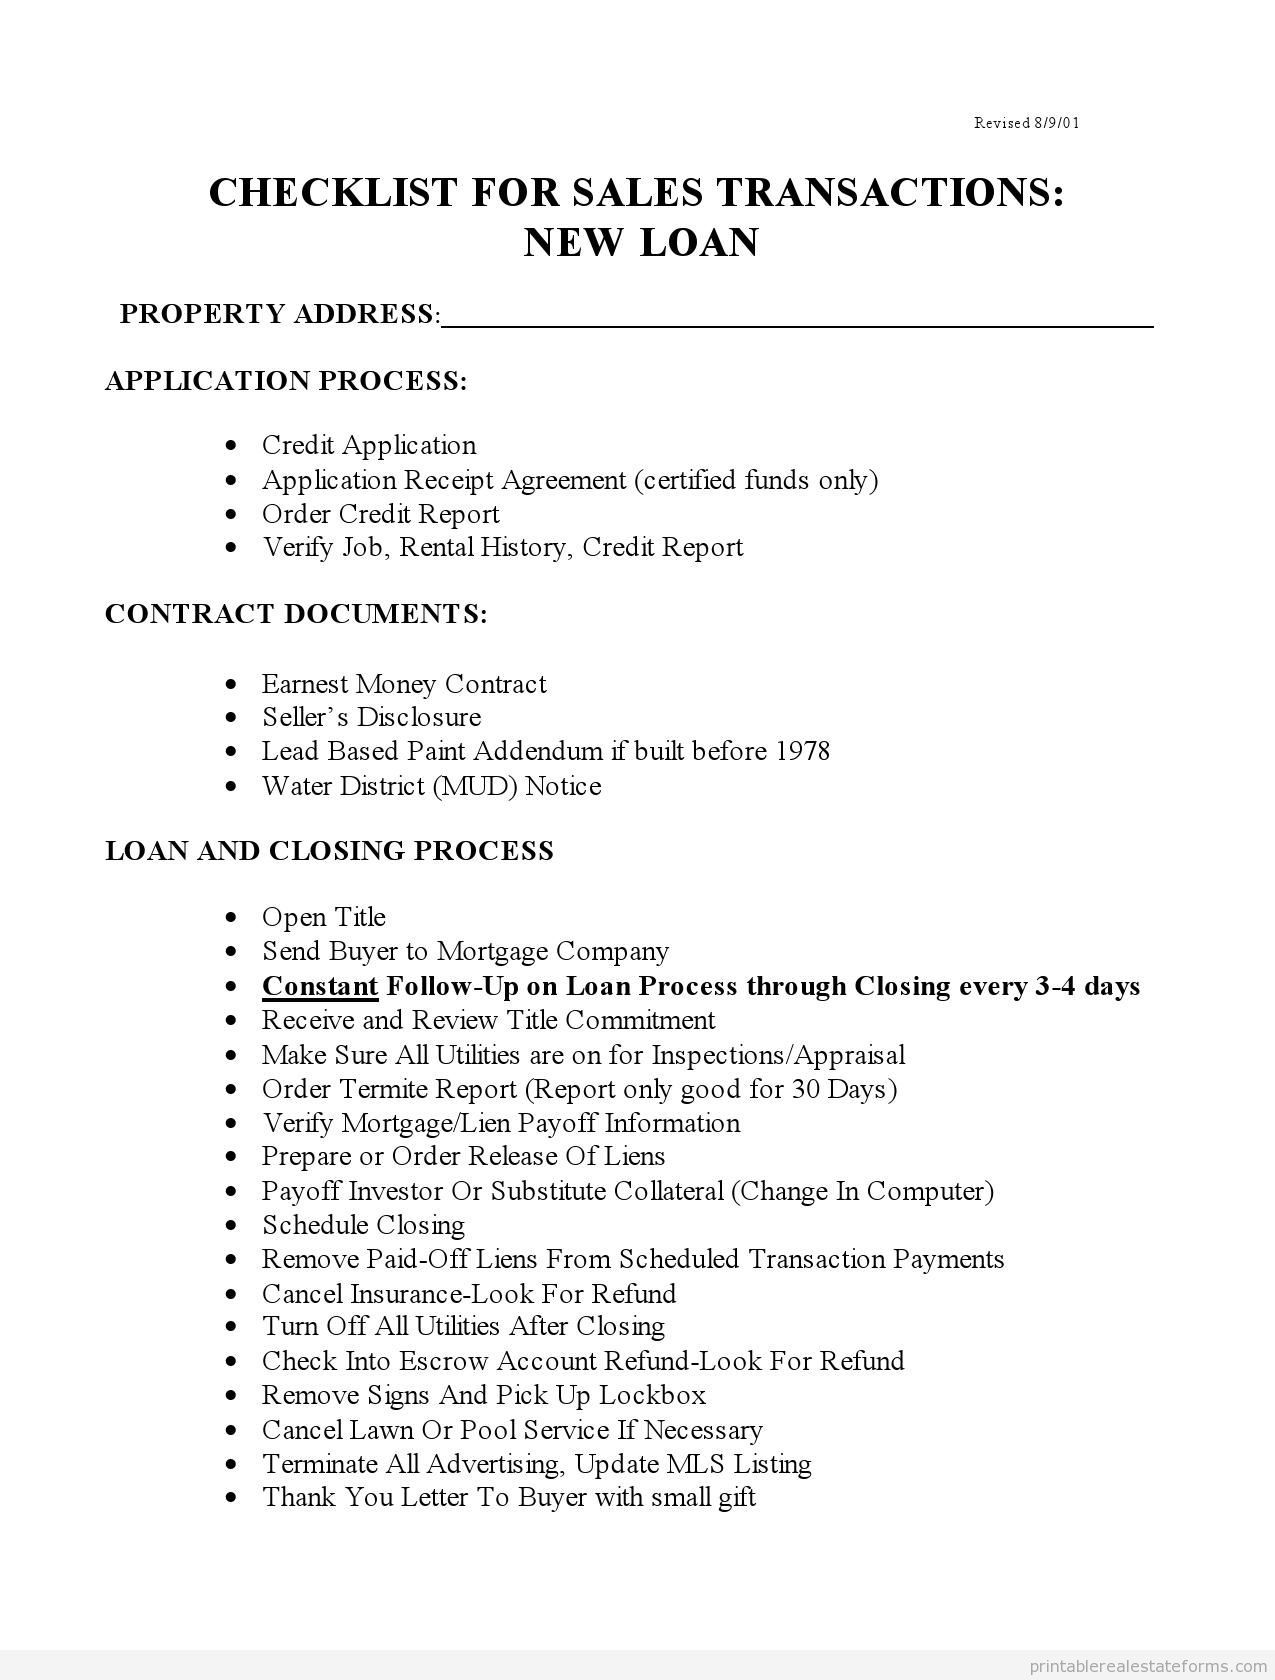 Sample Printable Checklist For Sales With New Loans 5 Form